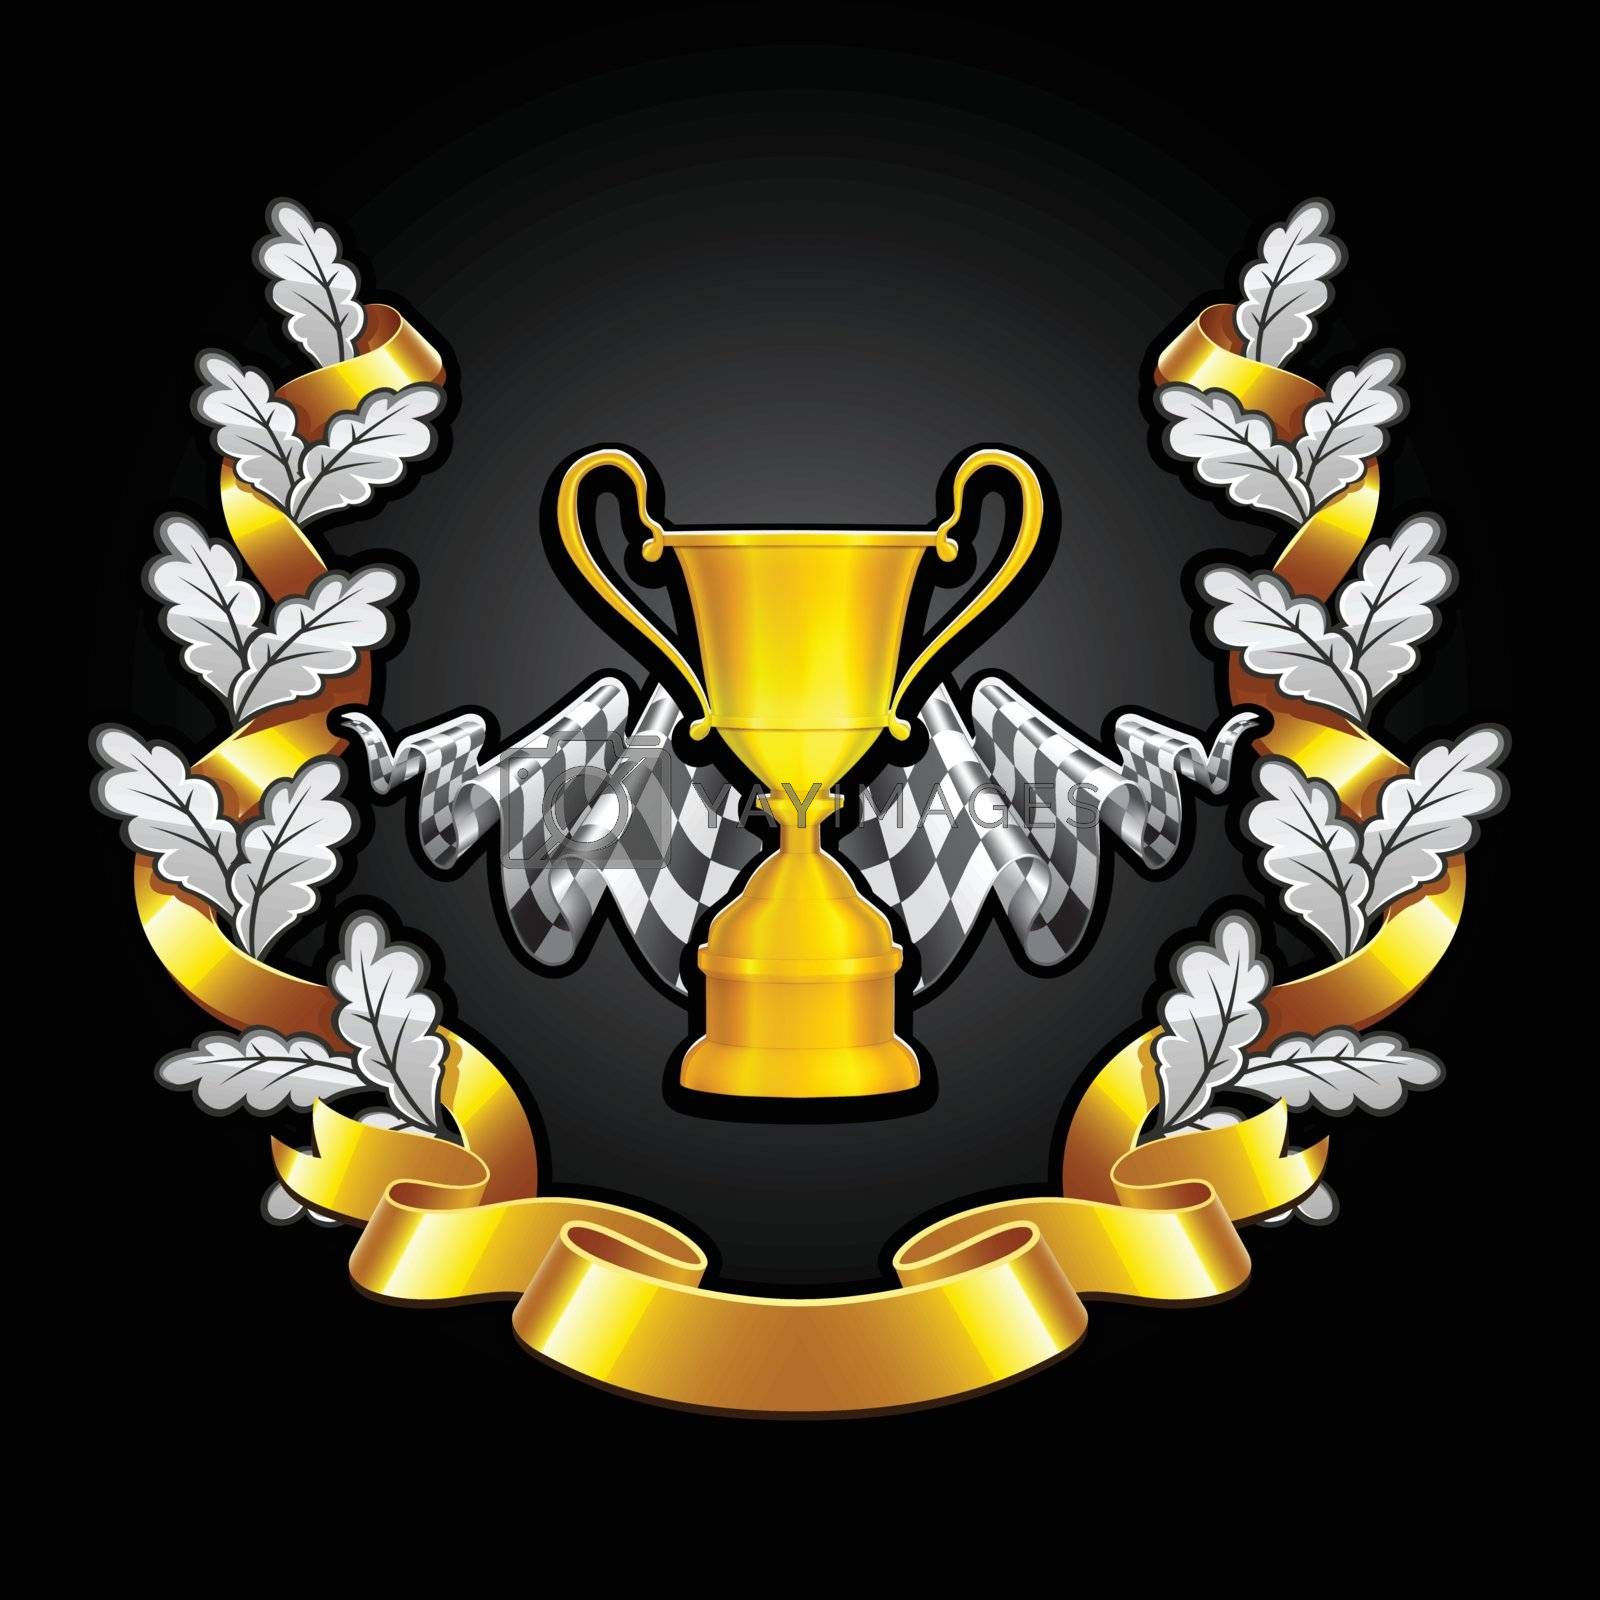 Royalty free image of Emblem Racing on black background by nirots